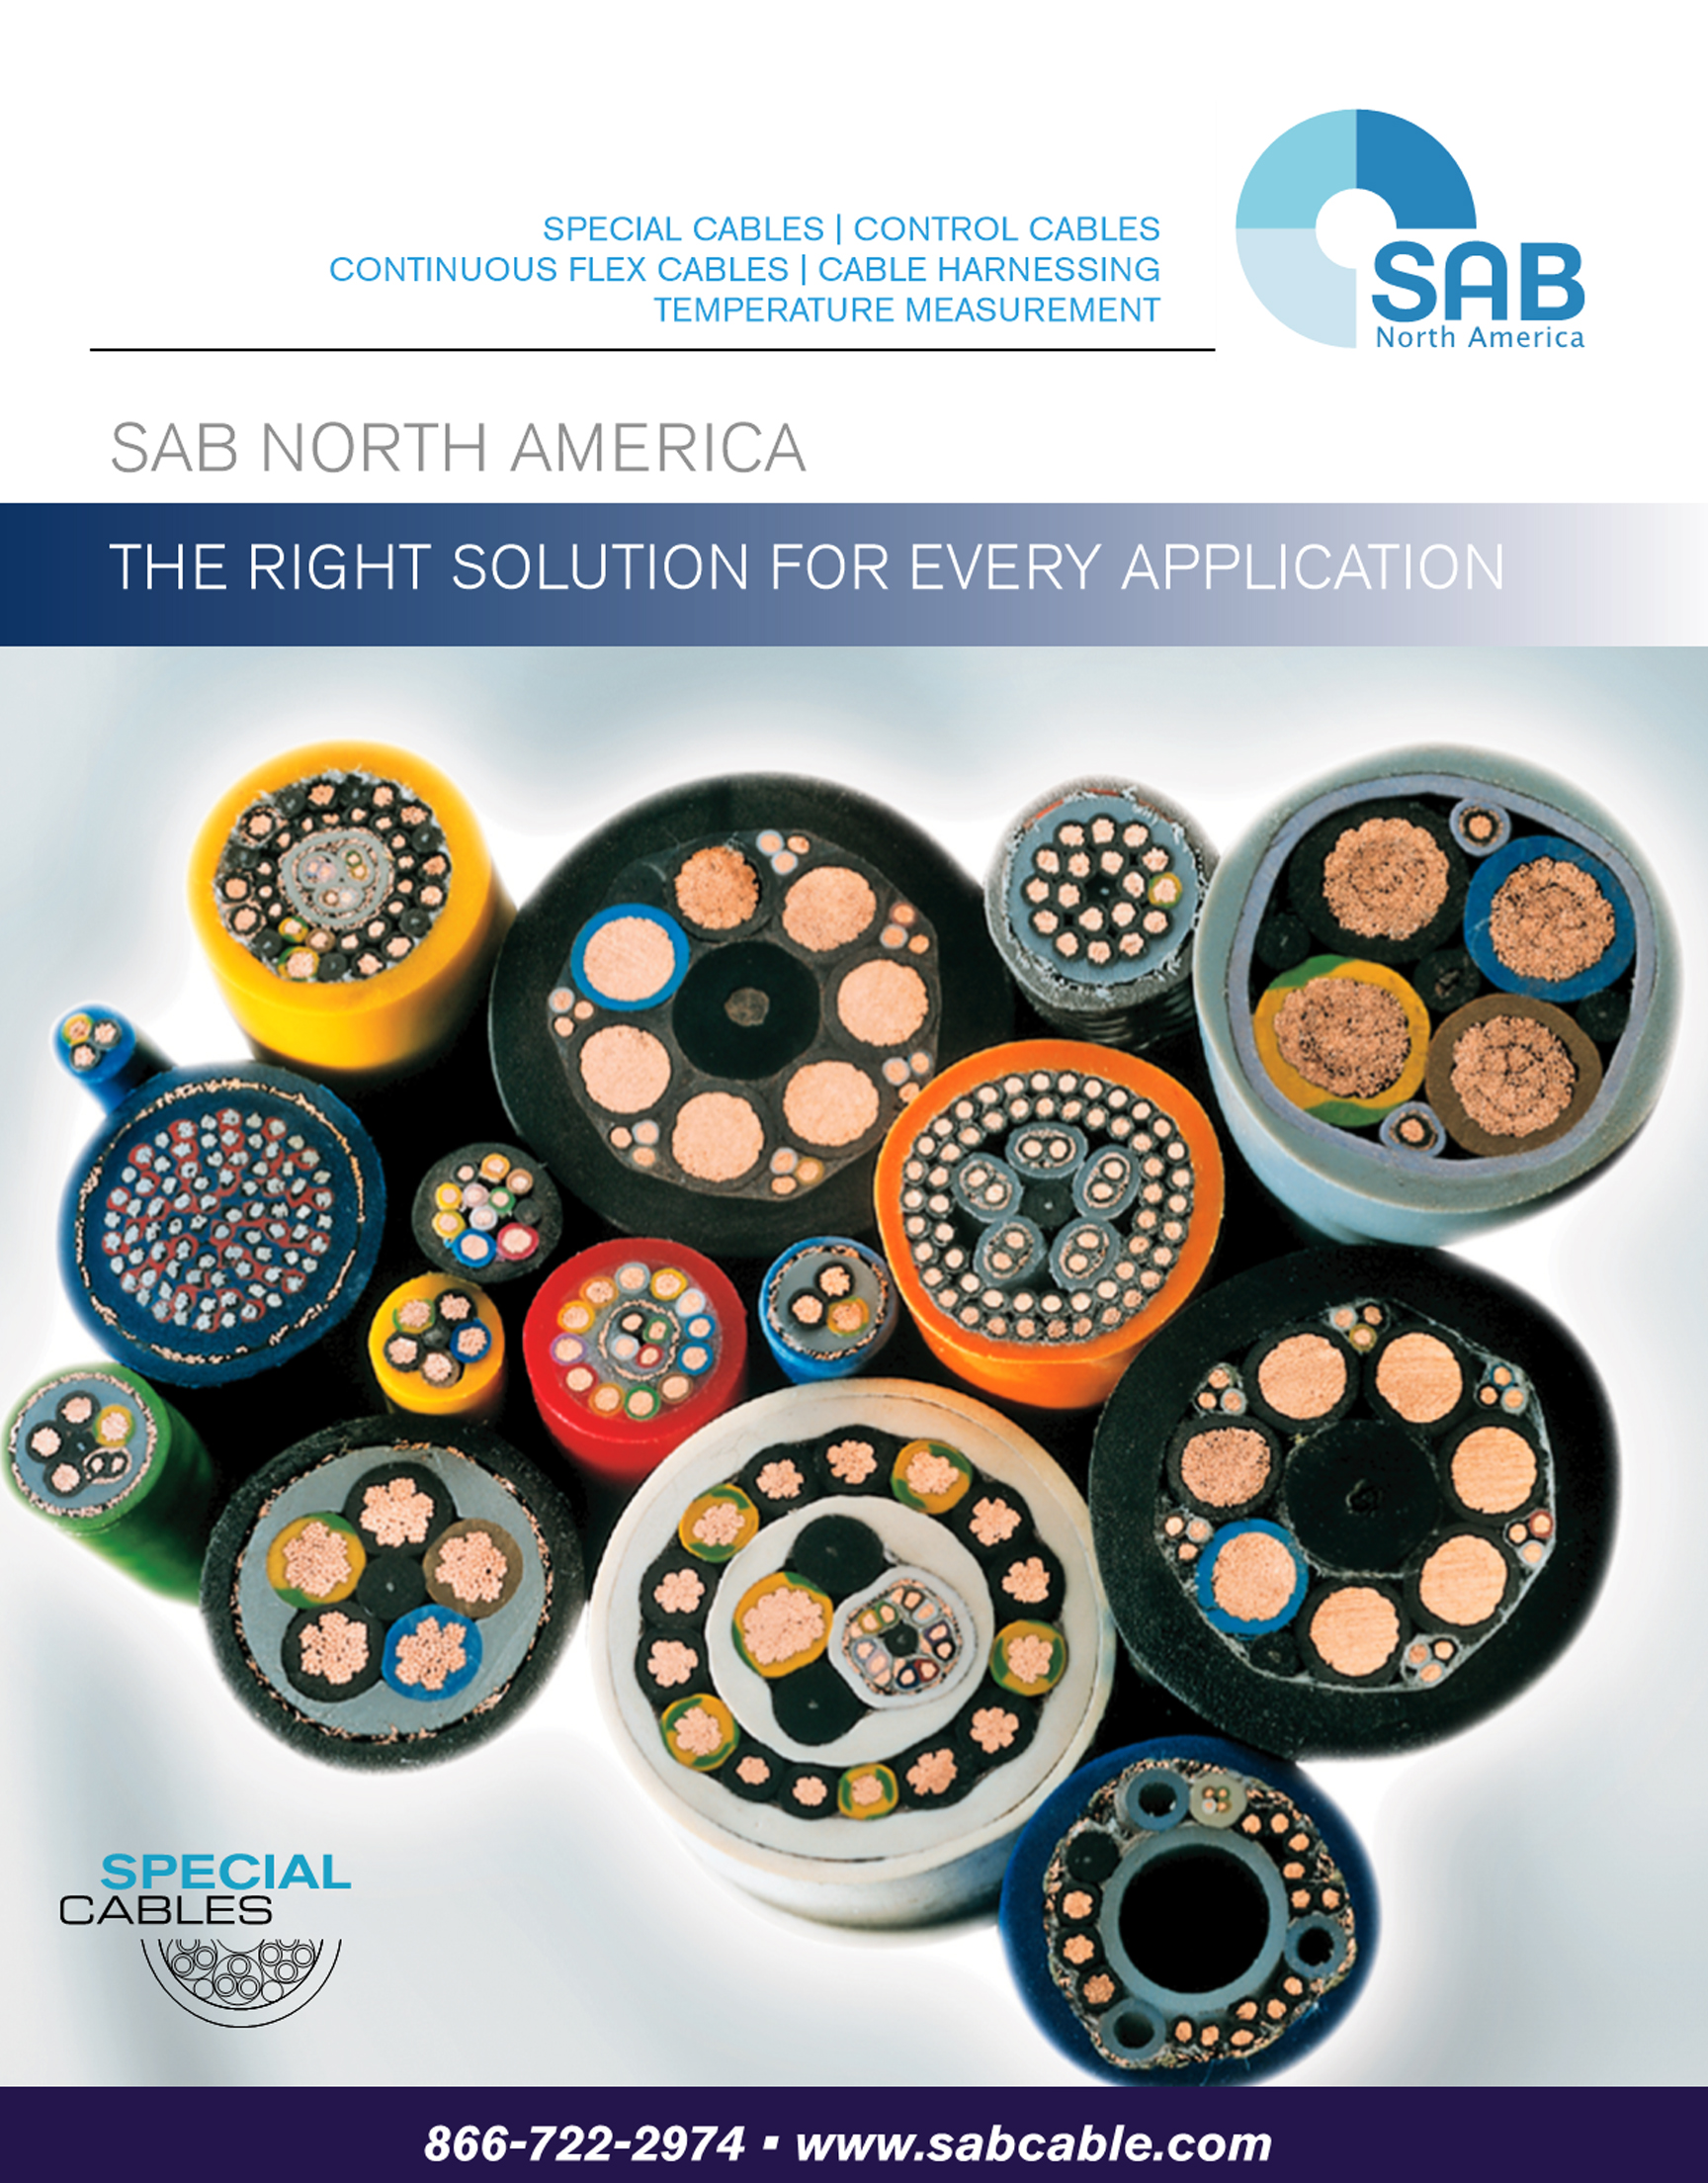 Sab Cable North America Cat5 Wiring Standard Canada Also Cat 5e Connectors Jack Furthermore 4 Cables For Automation Category